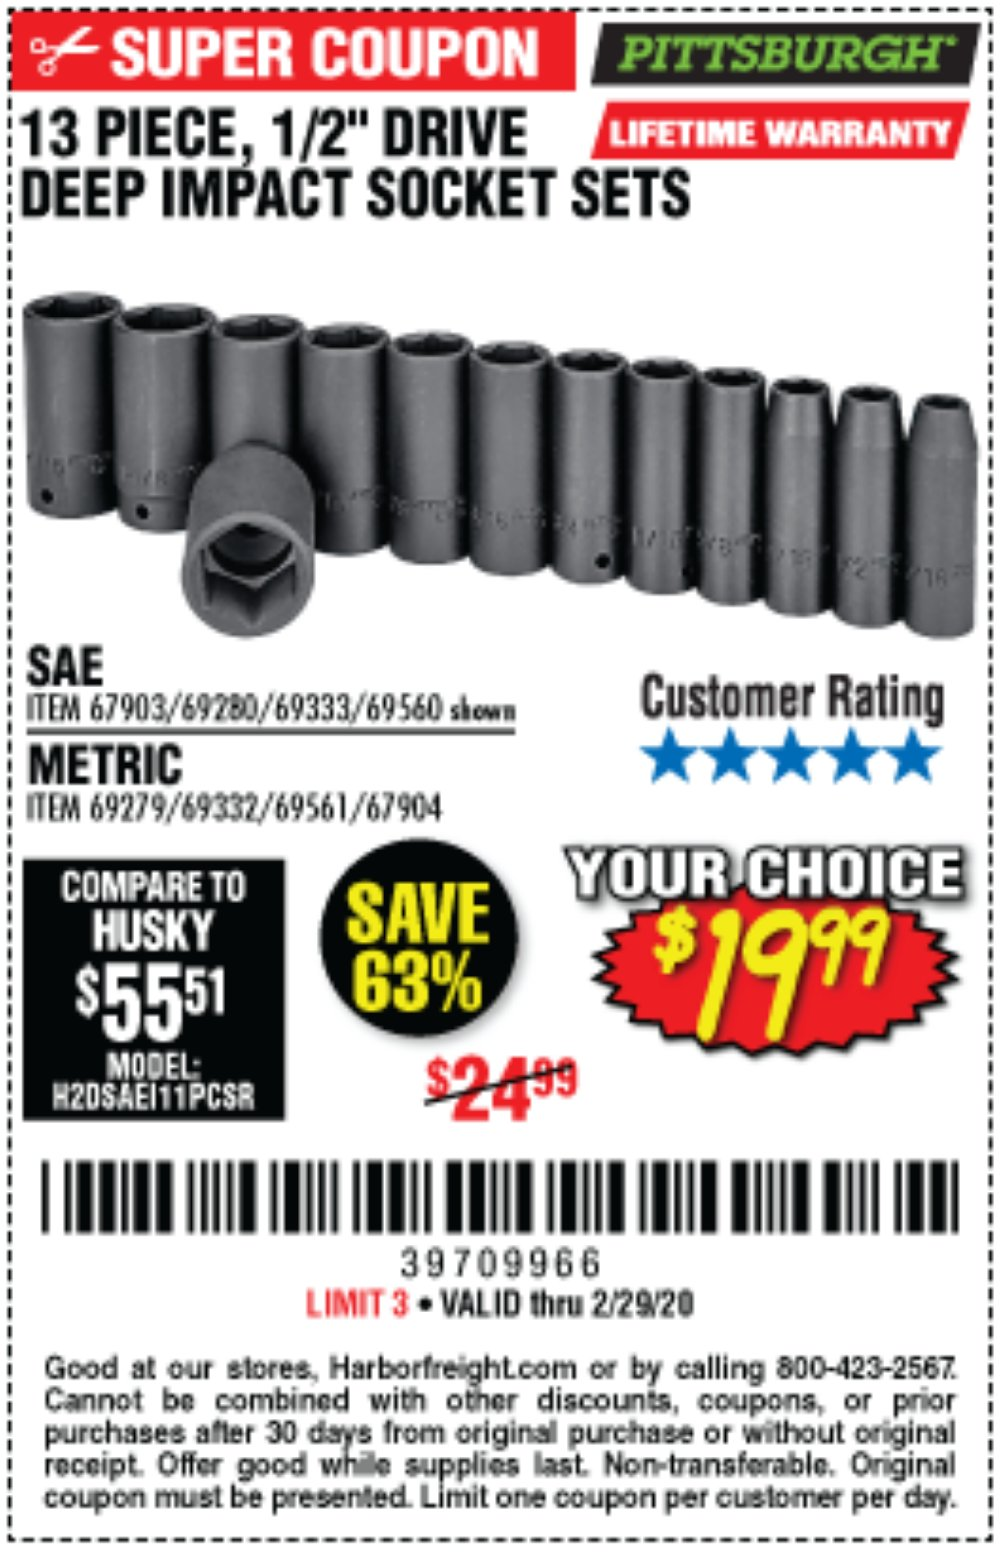 Harbor Freight Coupon, HF Coupons - 13 Pc. 1/2 In. Drive Impact Deep Socket Sets